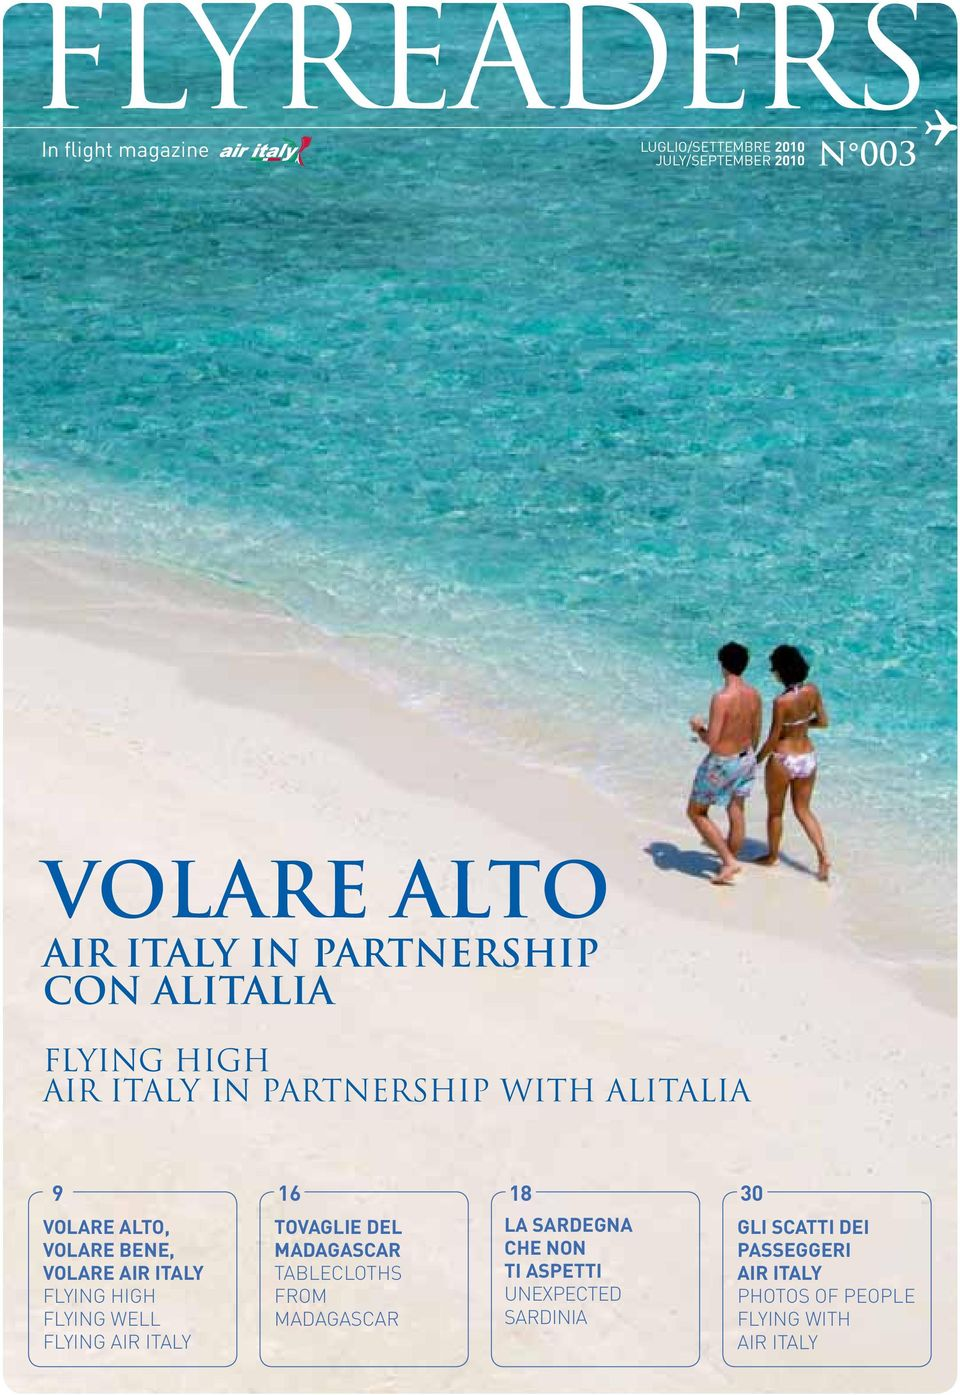 VOLARE AIR ITALY FLYING HIGH FLYING WELL FLYING AIR ITALY TOVAGLIE DEL MADAGASCAR TABLECLOTHS FROM MADAGASCAR LA